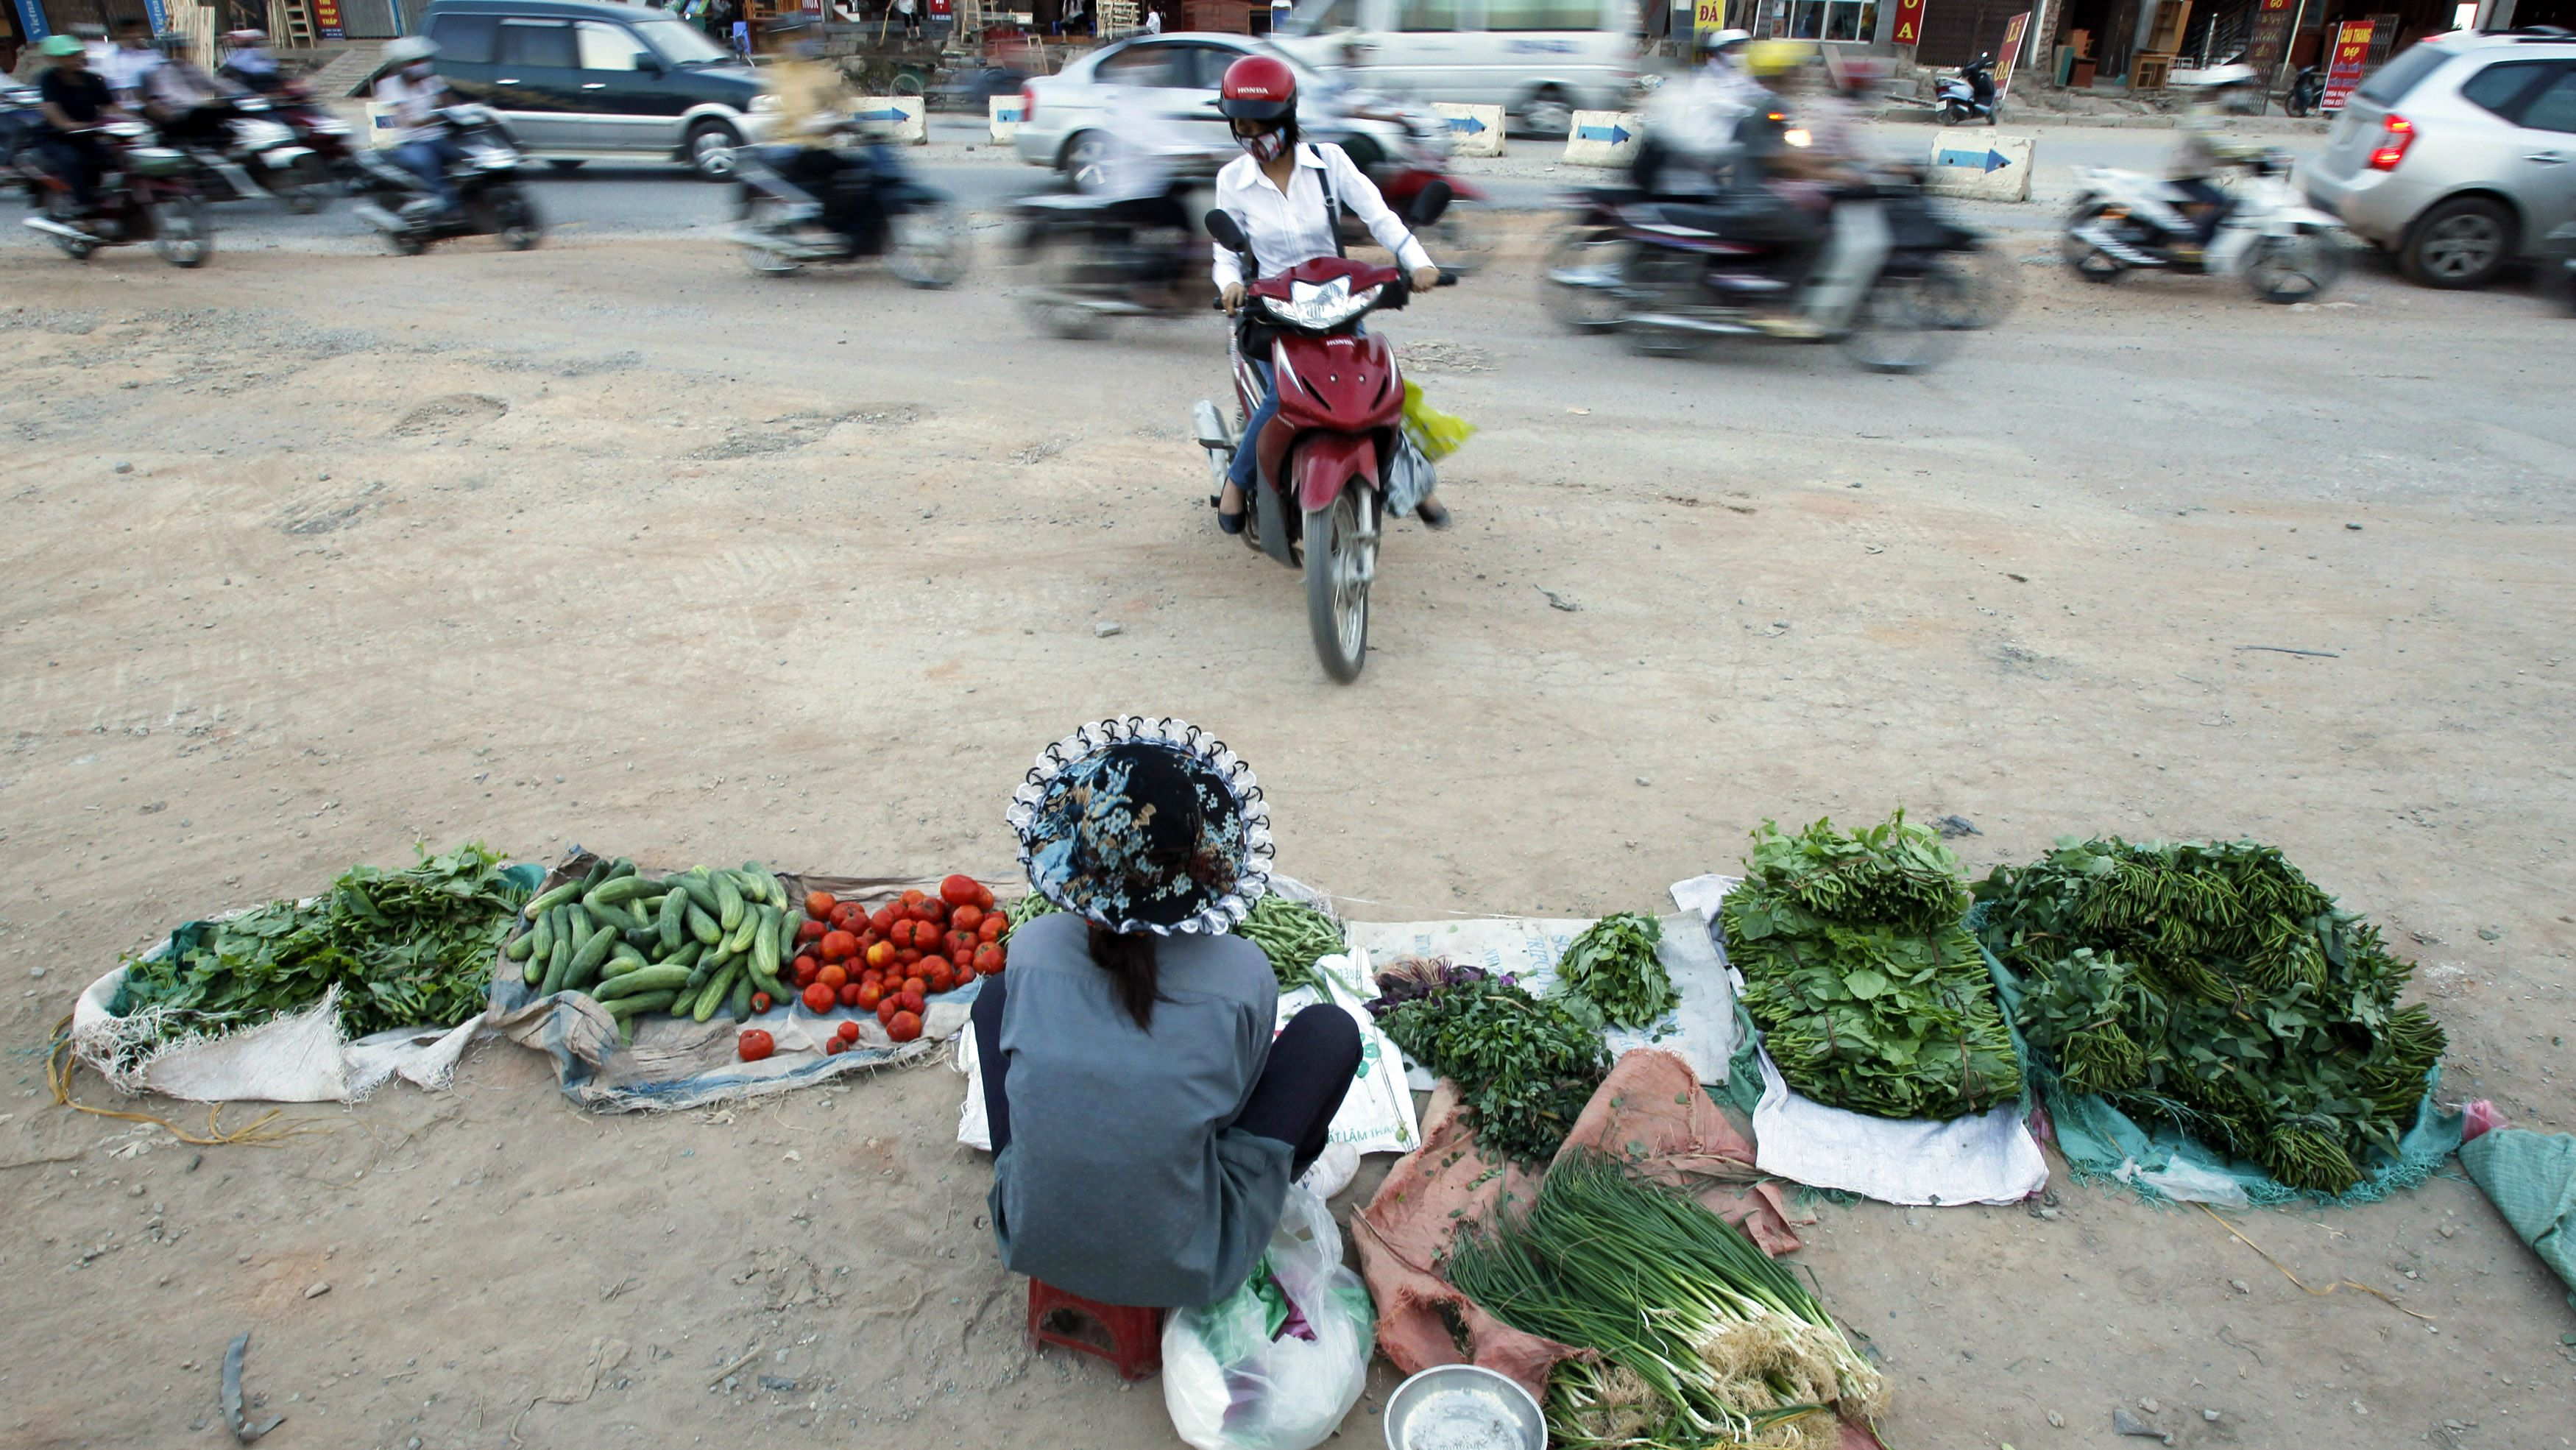 Vegetable seller in Vietnam.